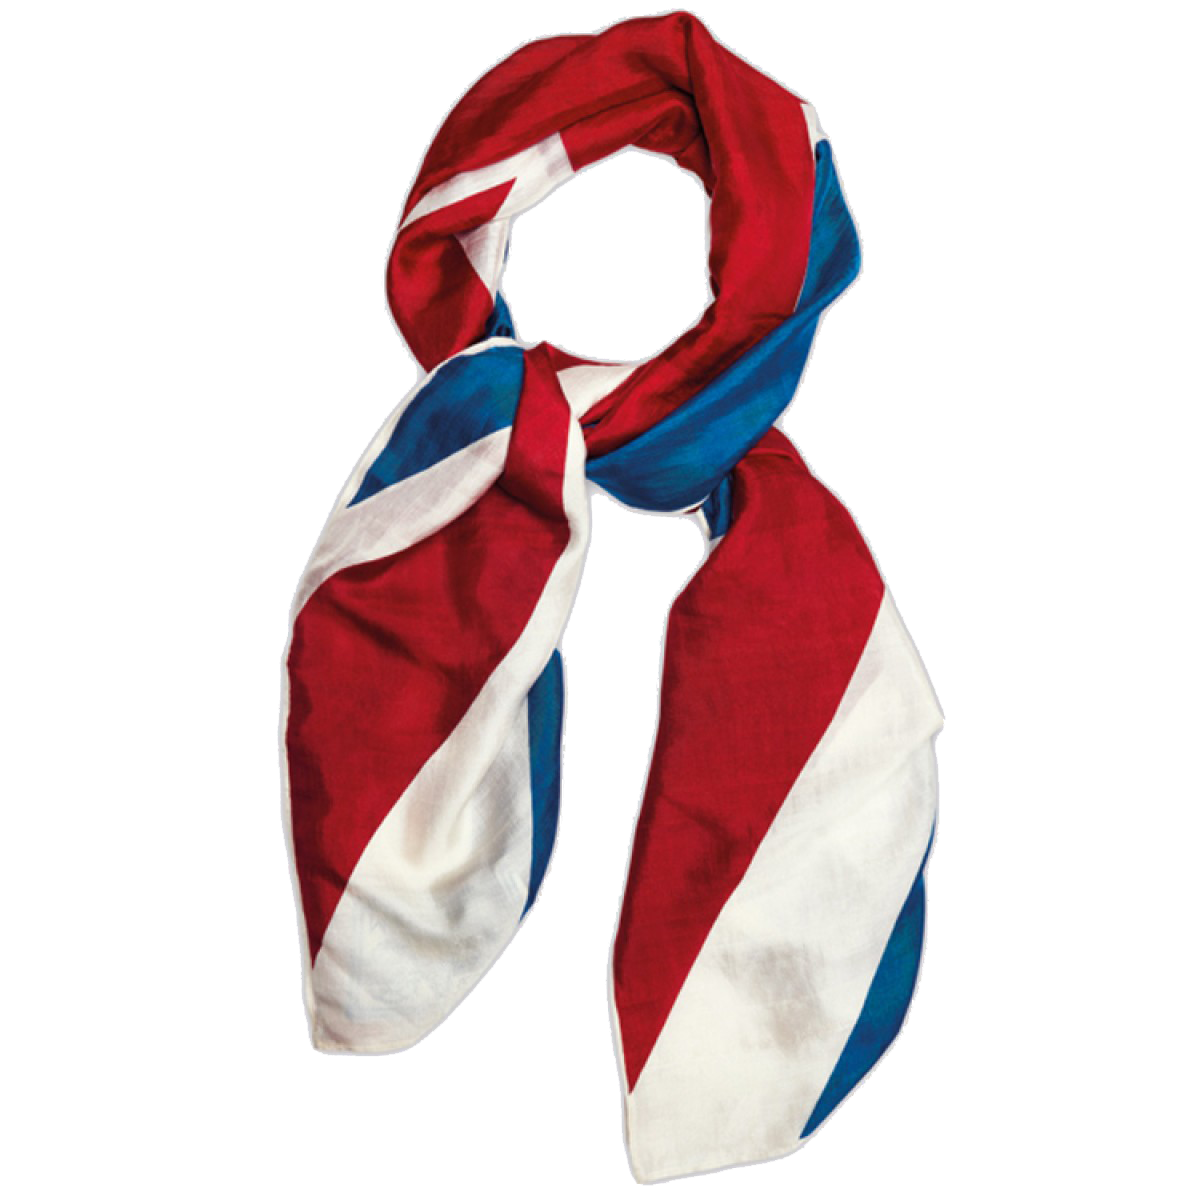 Silk Scarf PNG Image